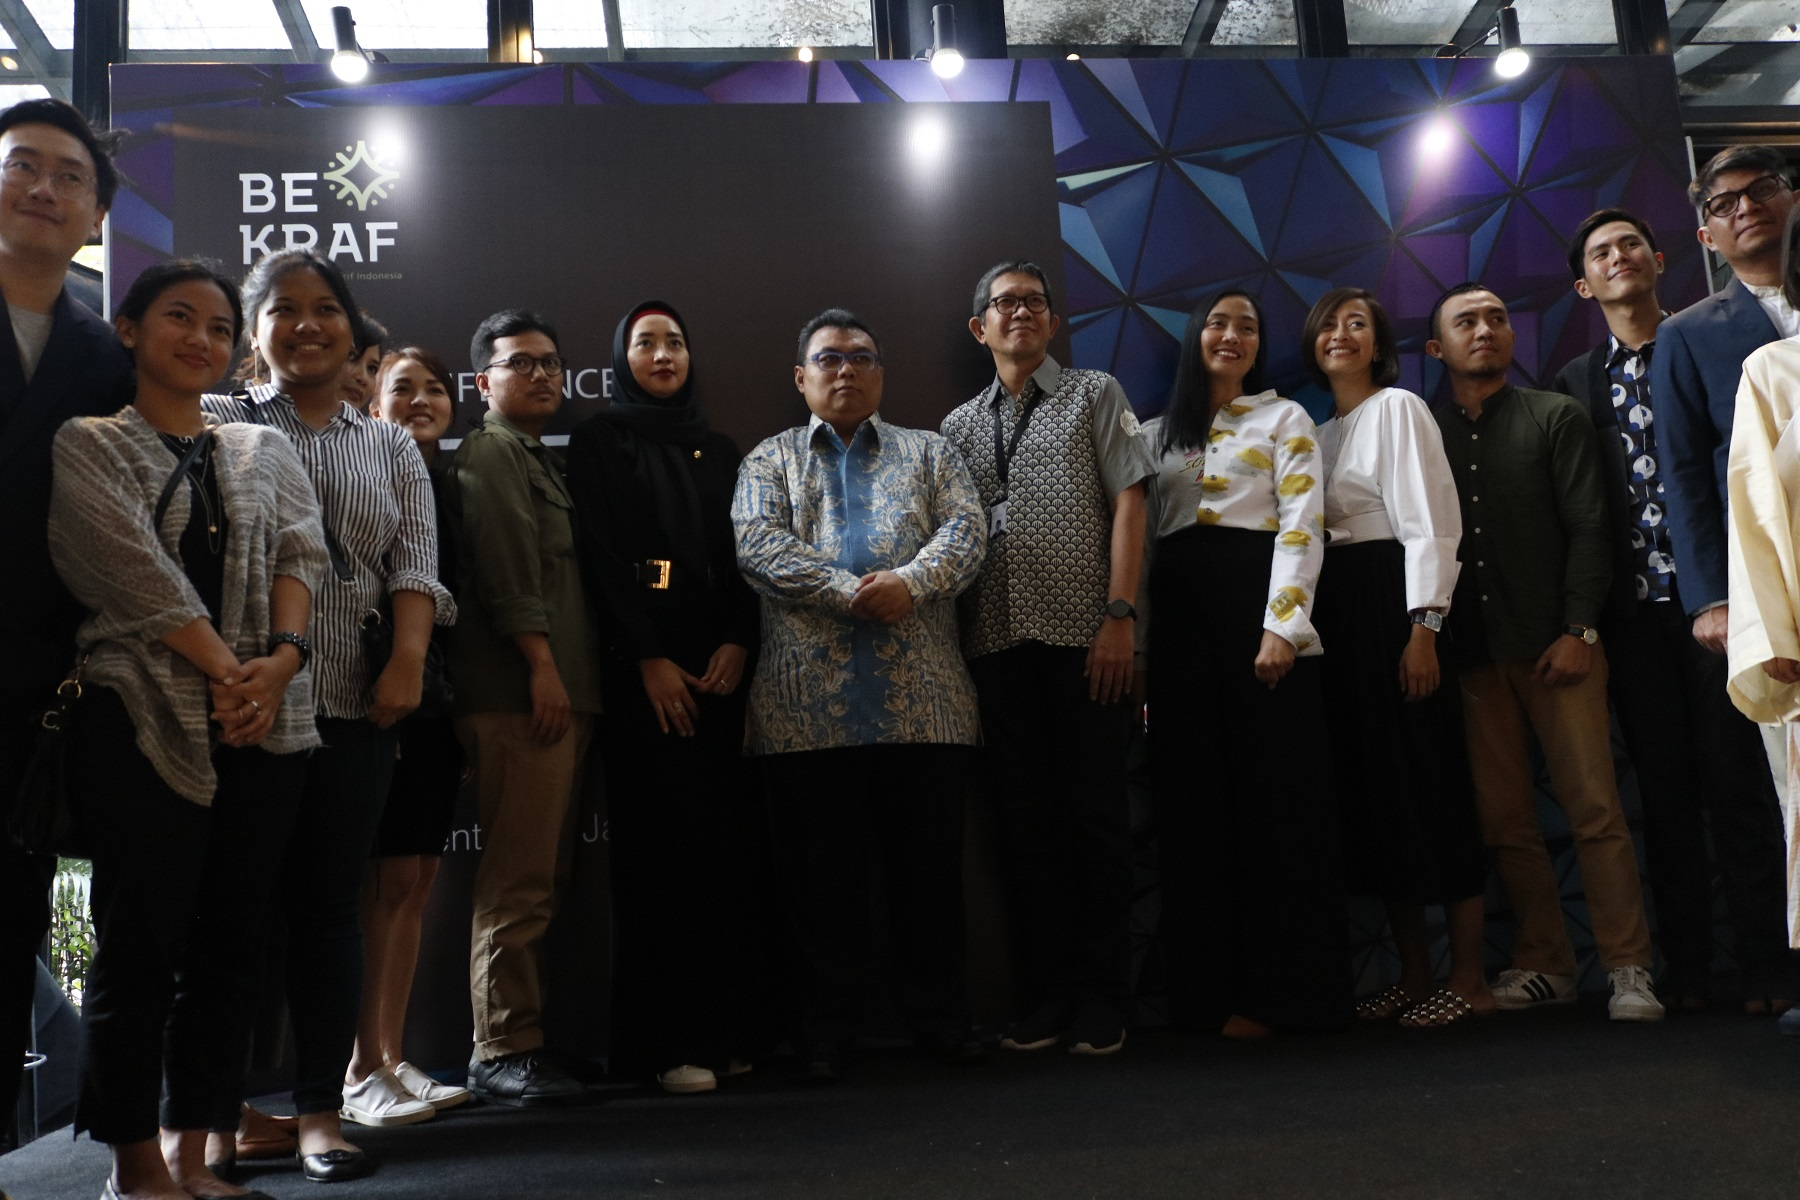 <a  style='text-decoration: none; font-weight:bold;' href=http://redwhitecommunication.com:80/index.php/_home/news/id/MTQ2.php>14 Jenama Lokal Indonesia Tampil dalam Rising Fashion 2018 di Singapura</a>